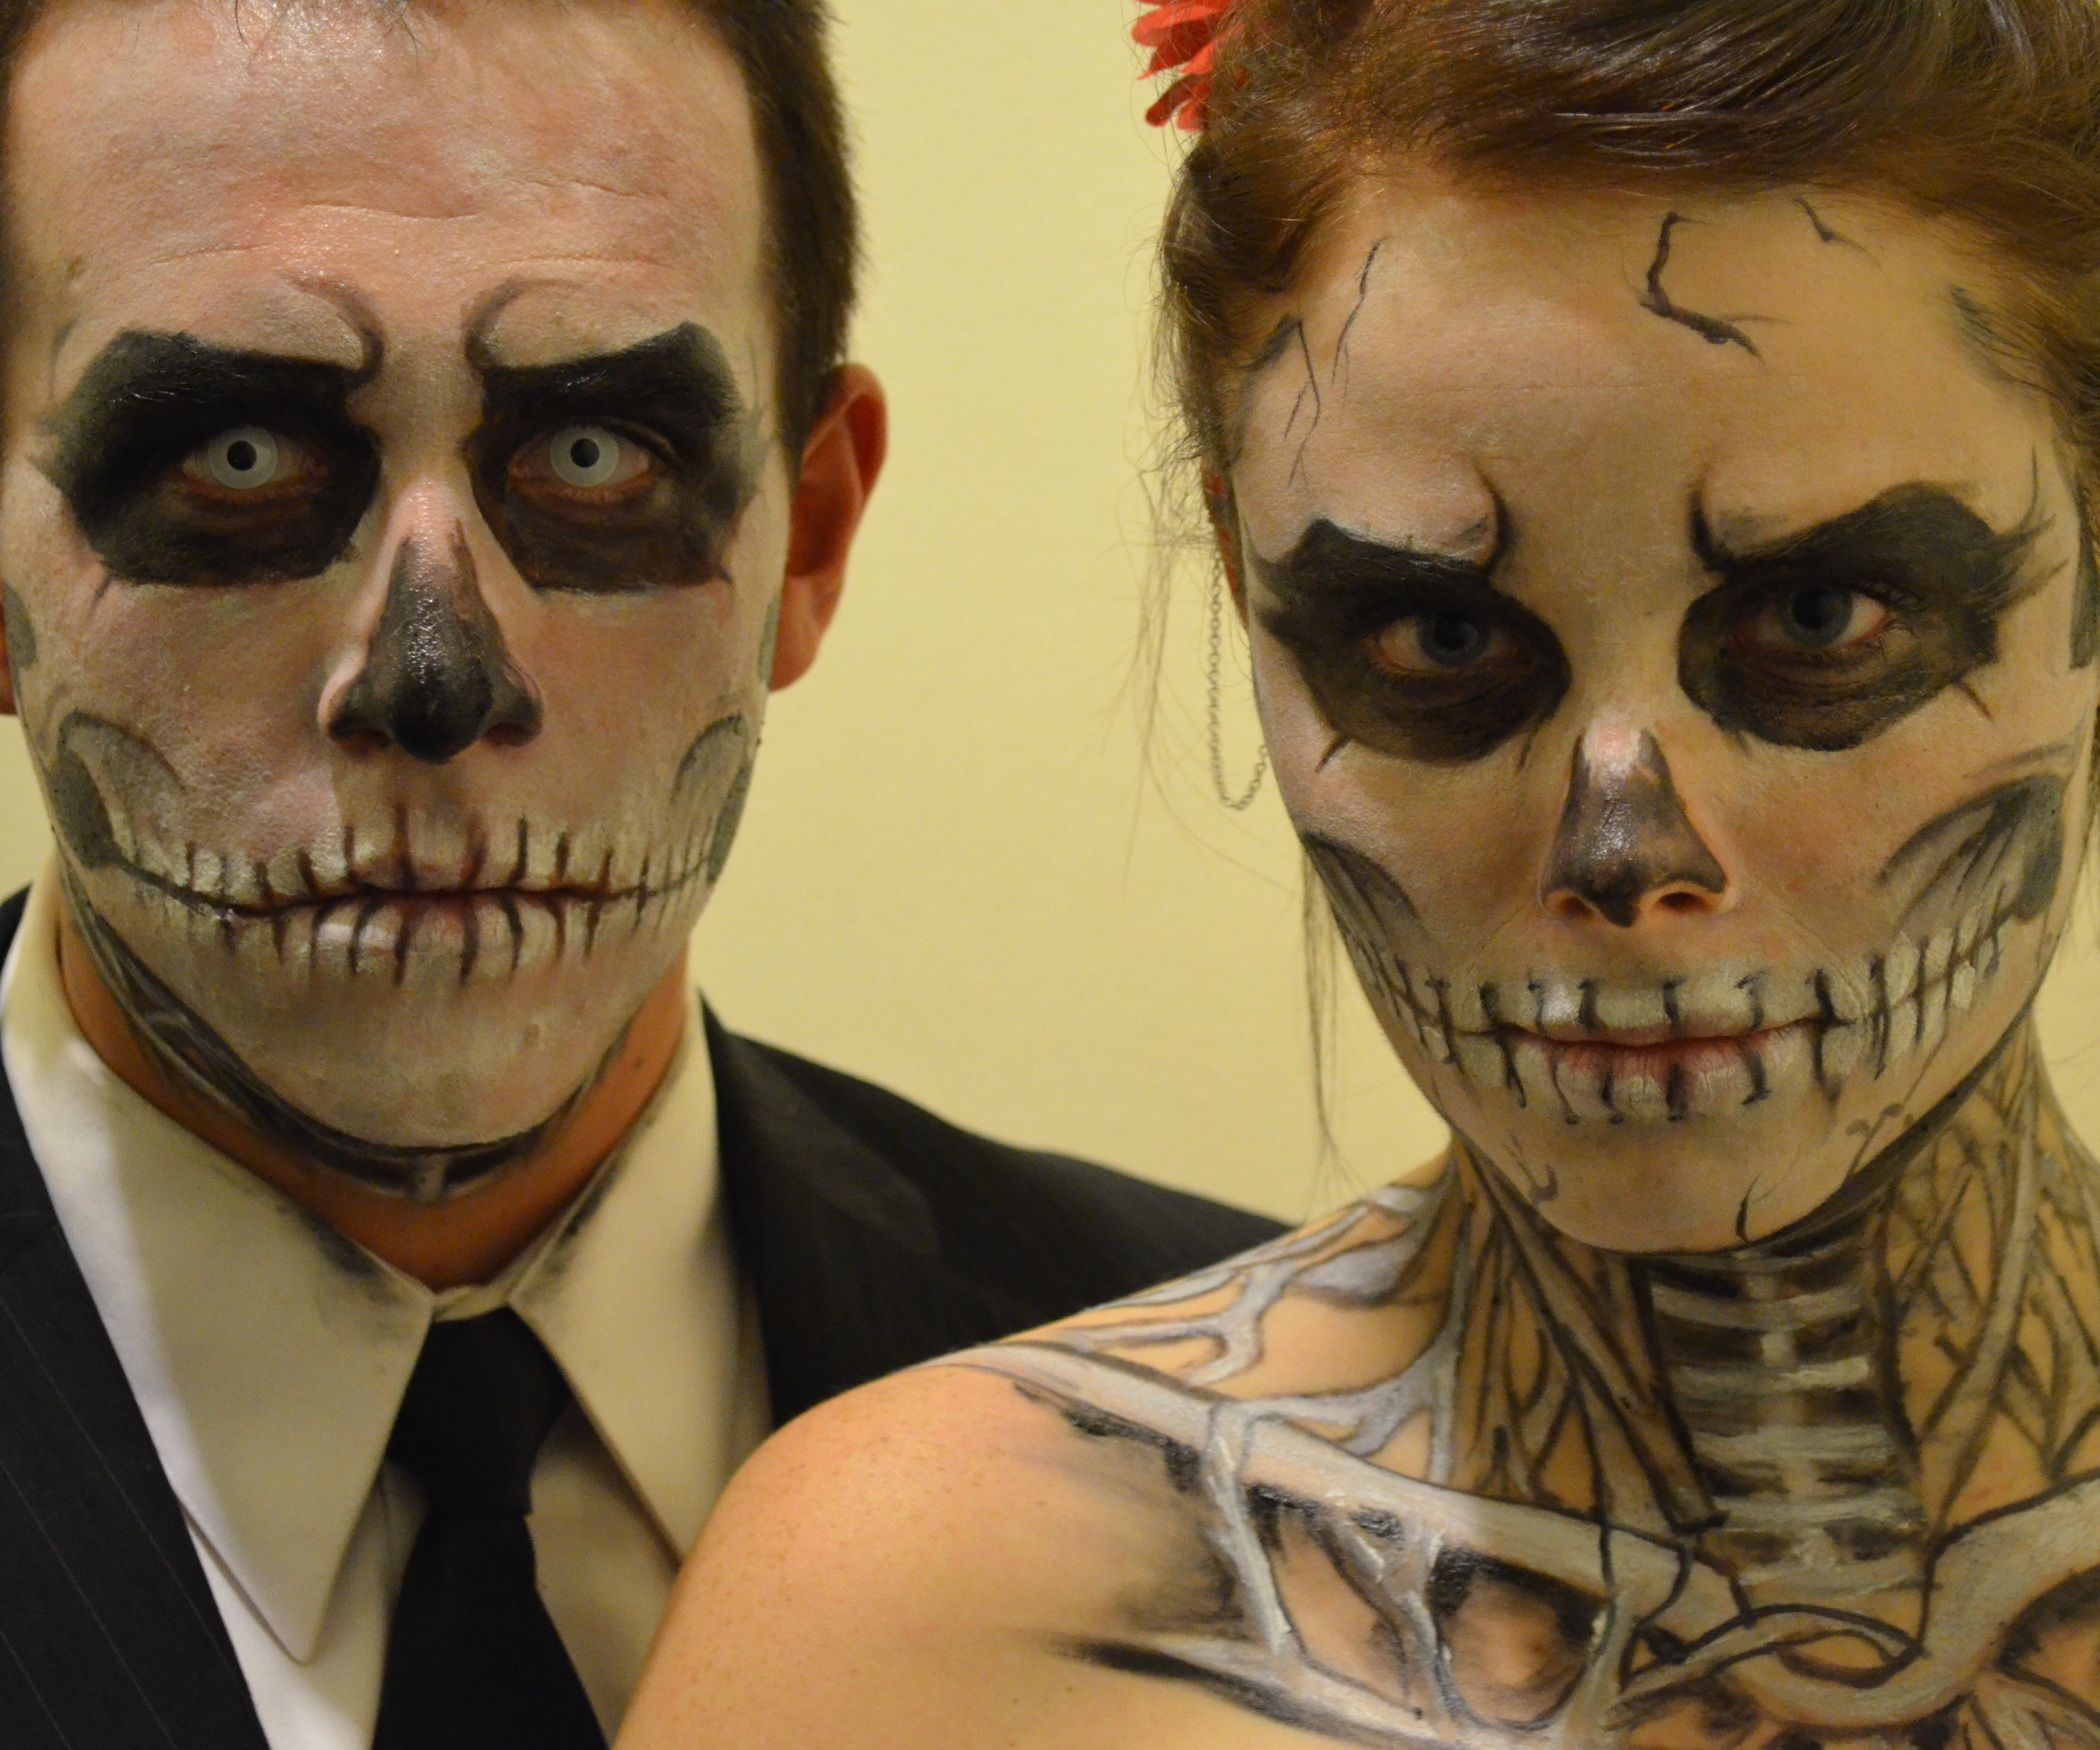 Skeleton Halloween Makeup | Skeleton makeup, Halloween makeup and ...